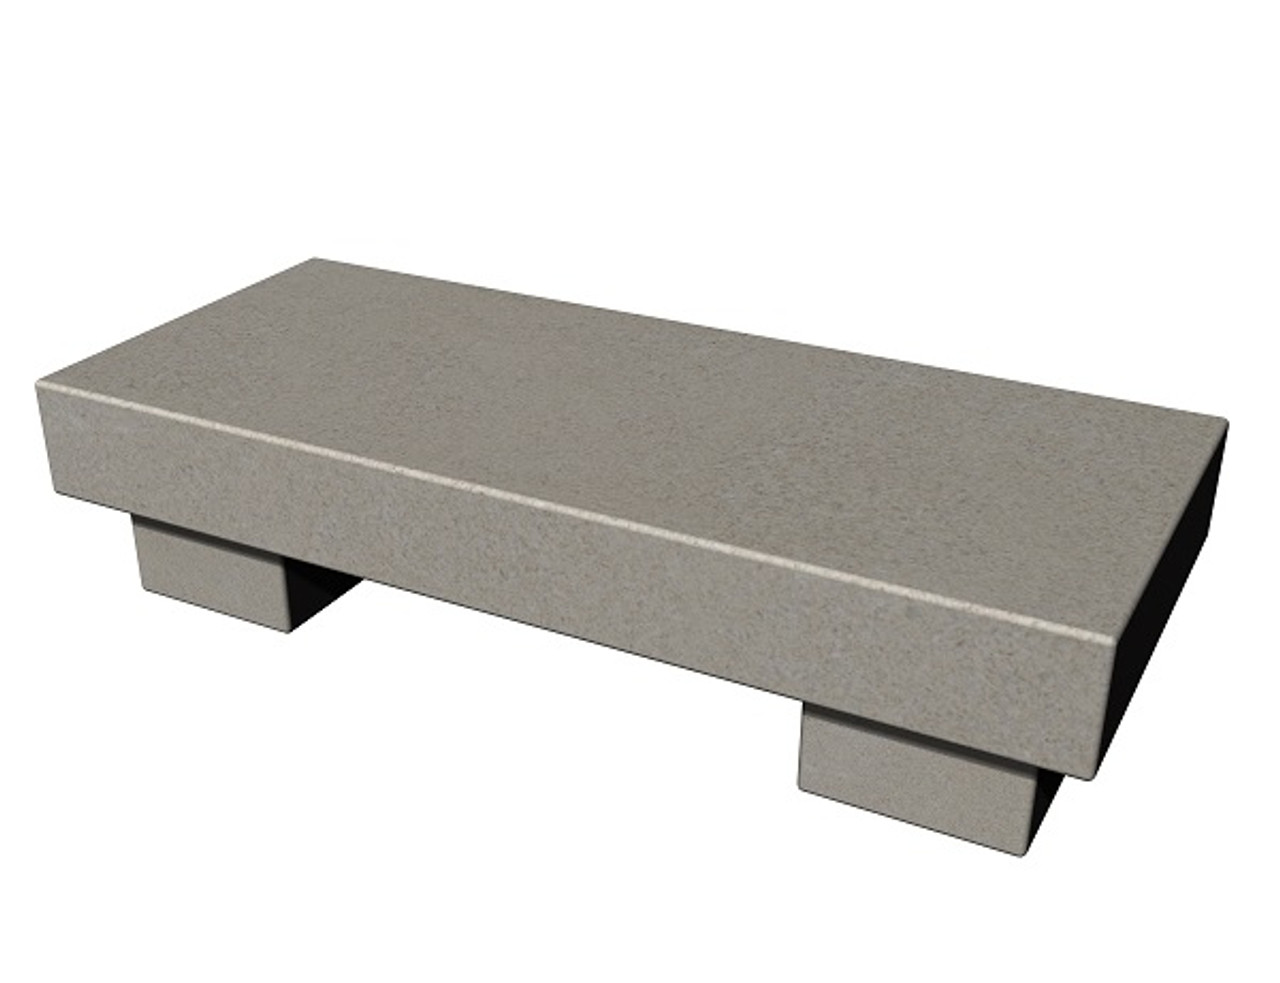 The Zen Bench in honed Standard buff limestone, standard and customer size, available in many different natural stone colors, made to order in the USA and shipped nationwide.